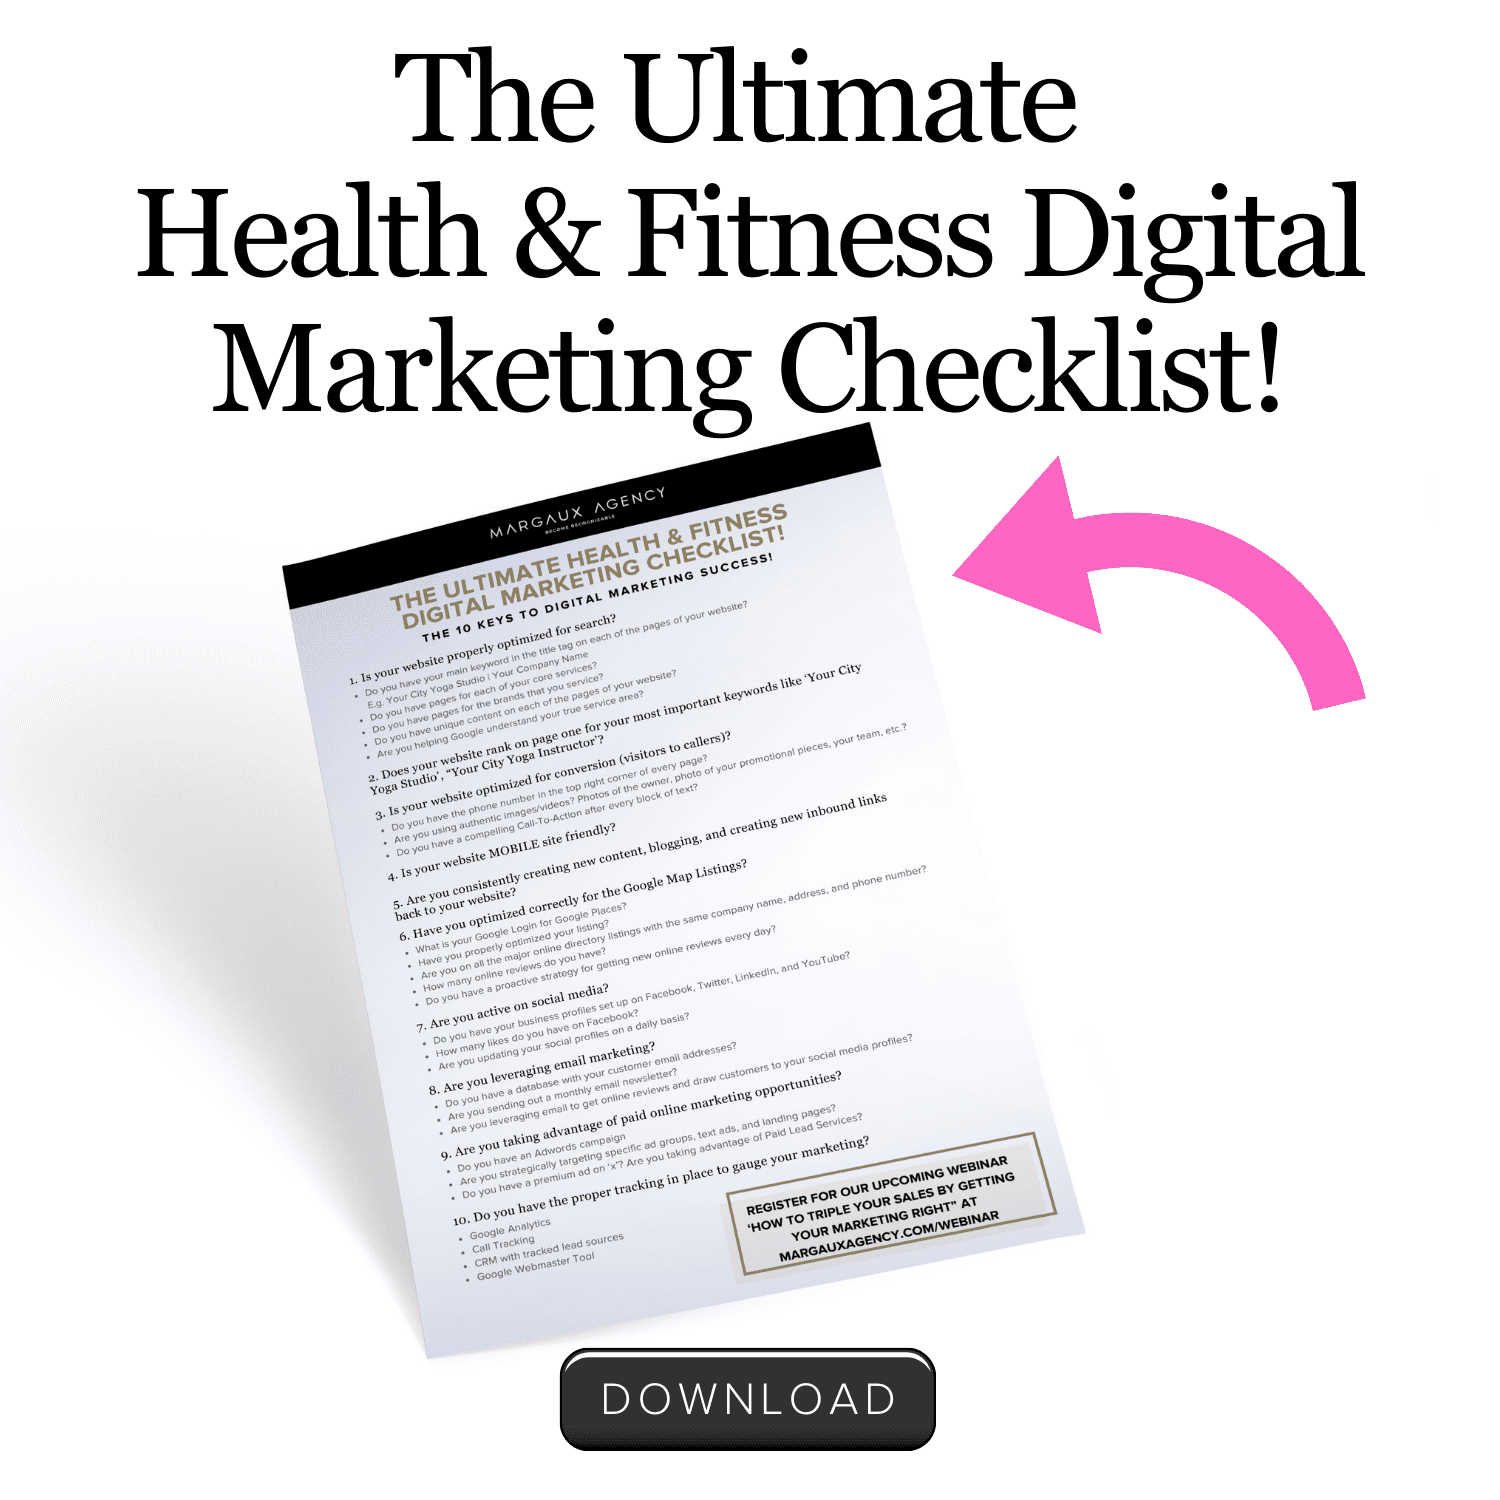 Ultimate Marketing Checklist for Health & Fitness Marketing